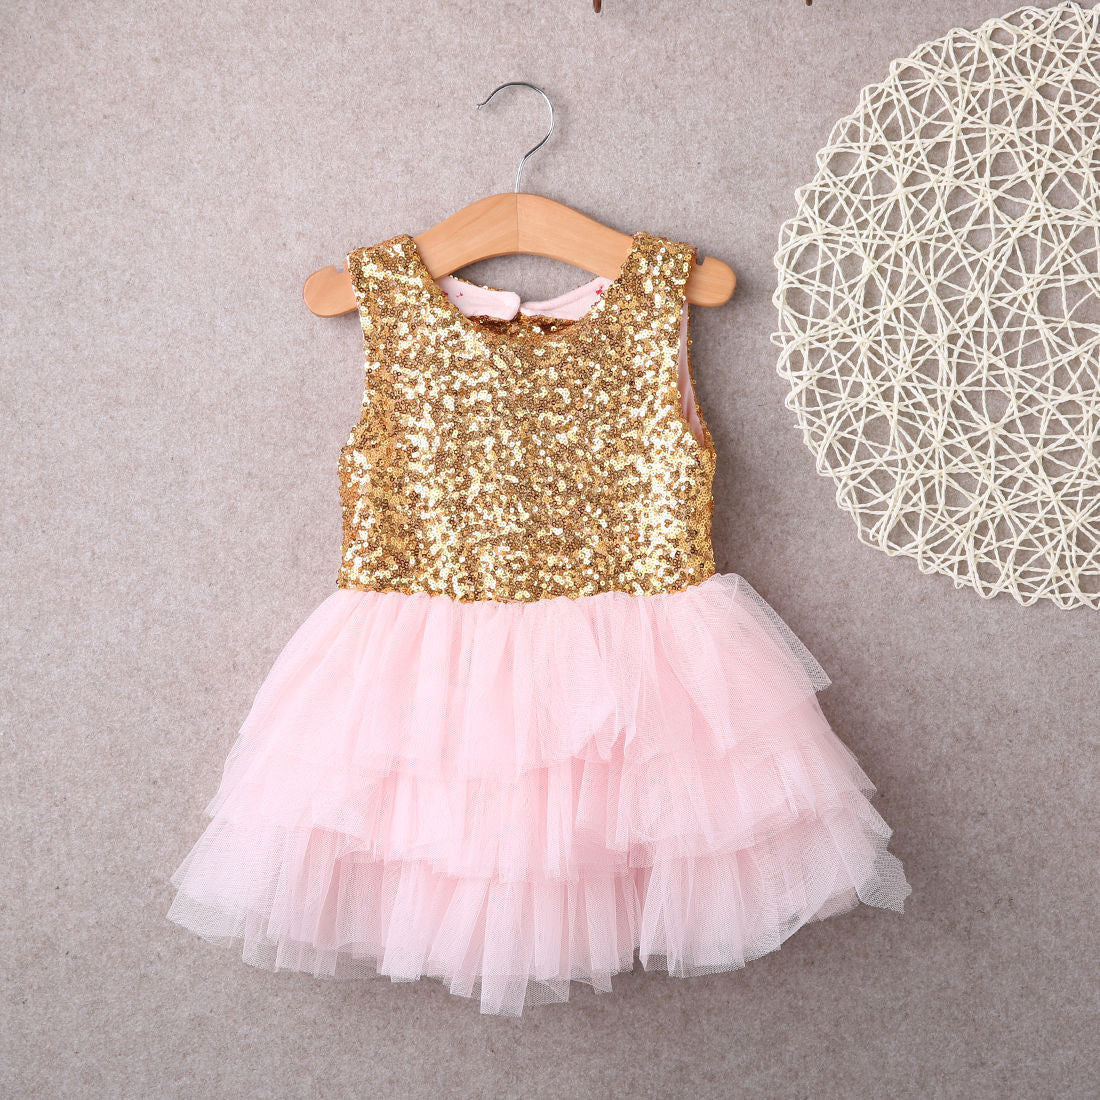 Party Wear Dresses For 1 Year Baby Girl | Feeling Inspired Beads